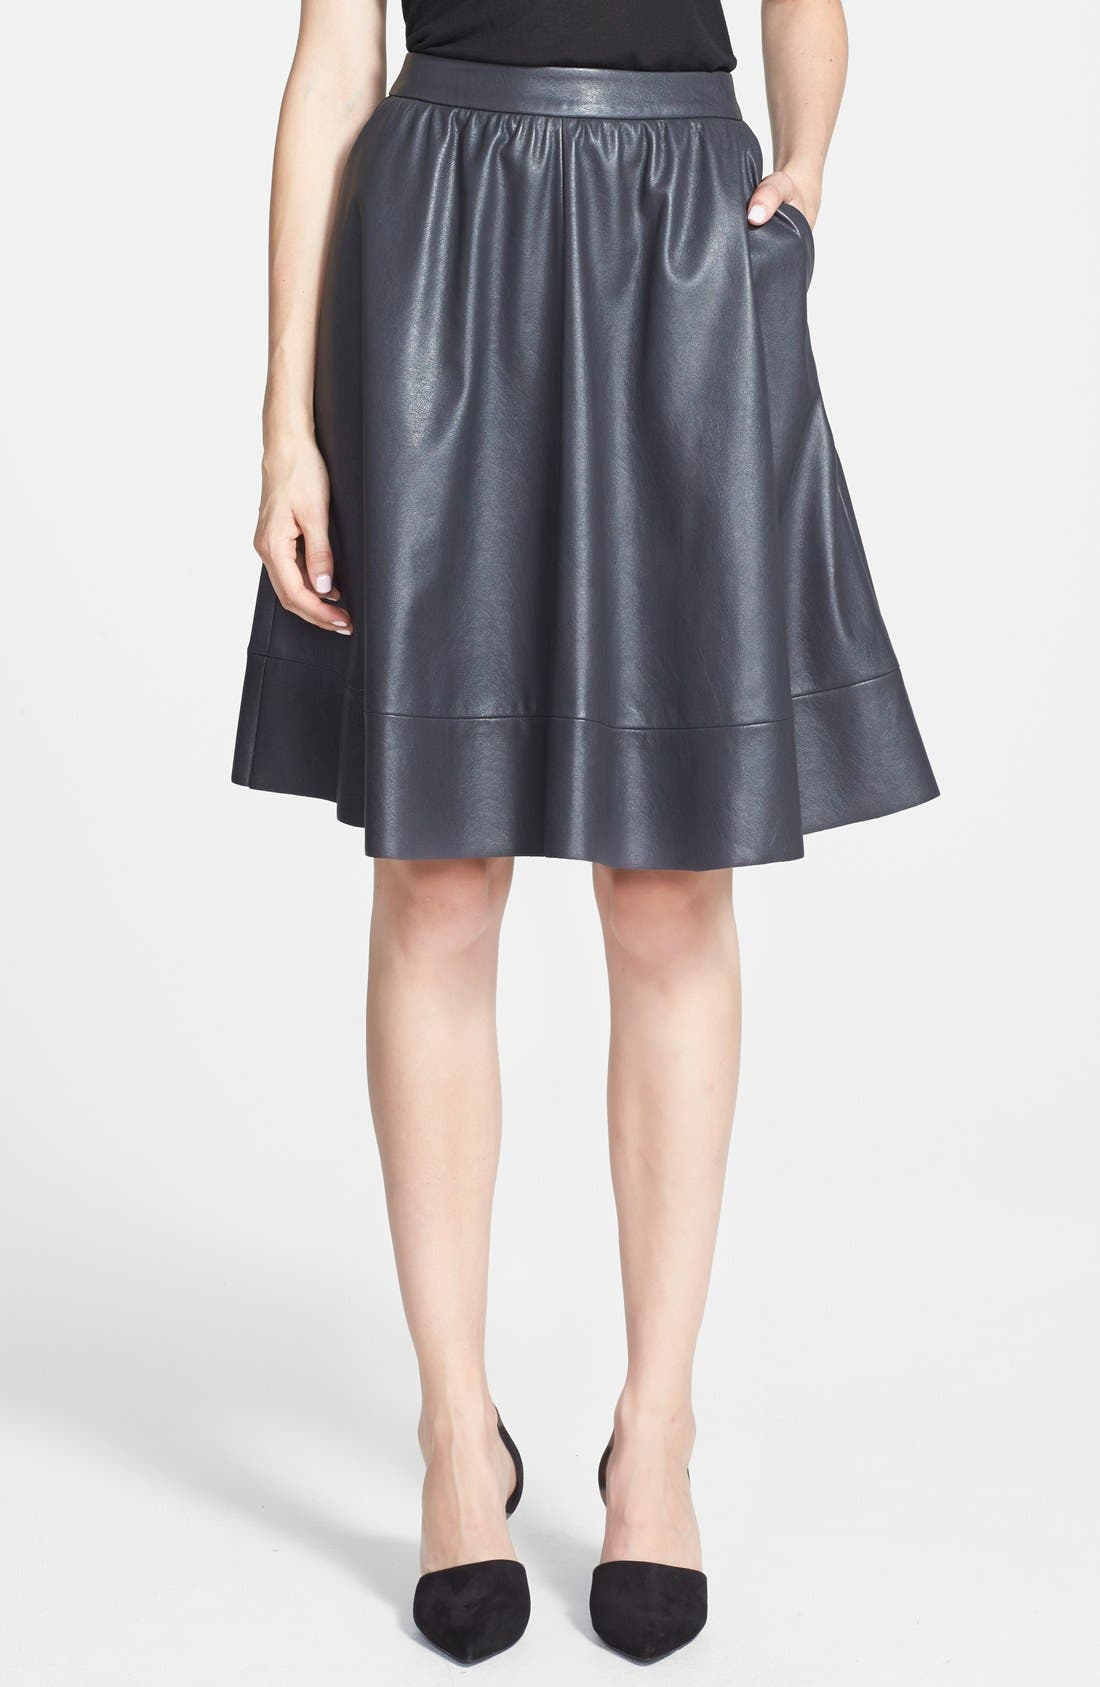 Main Image - Search for Sanity Faux Leather A-Line Skirt